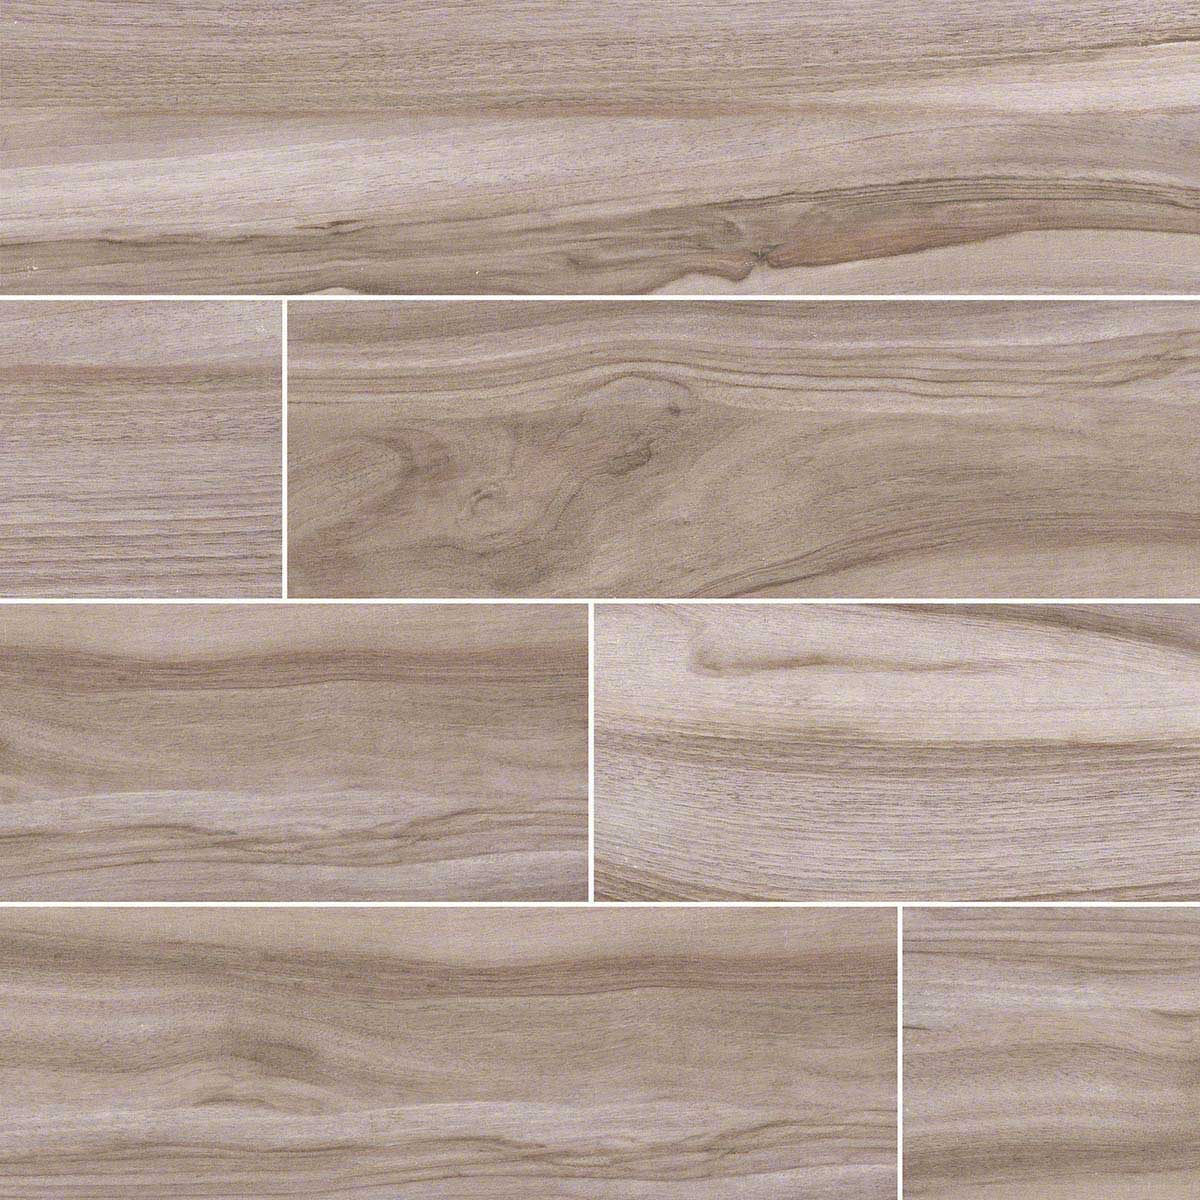 Porcelain Floor Tiles Wood Look Tile Art Of Tuscany